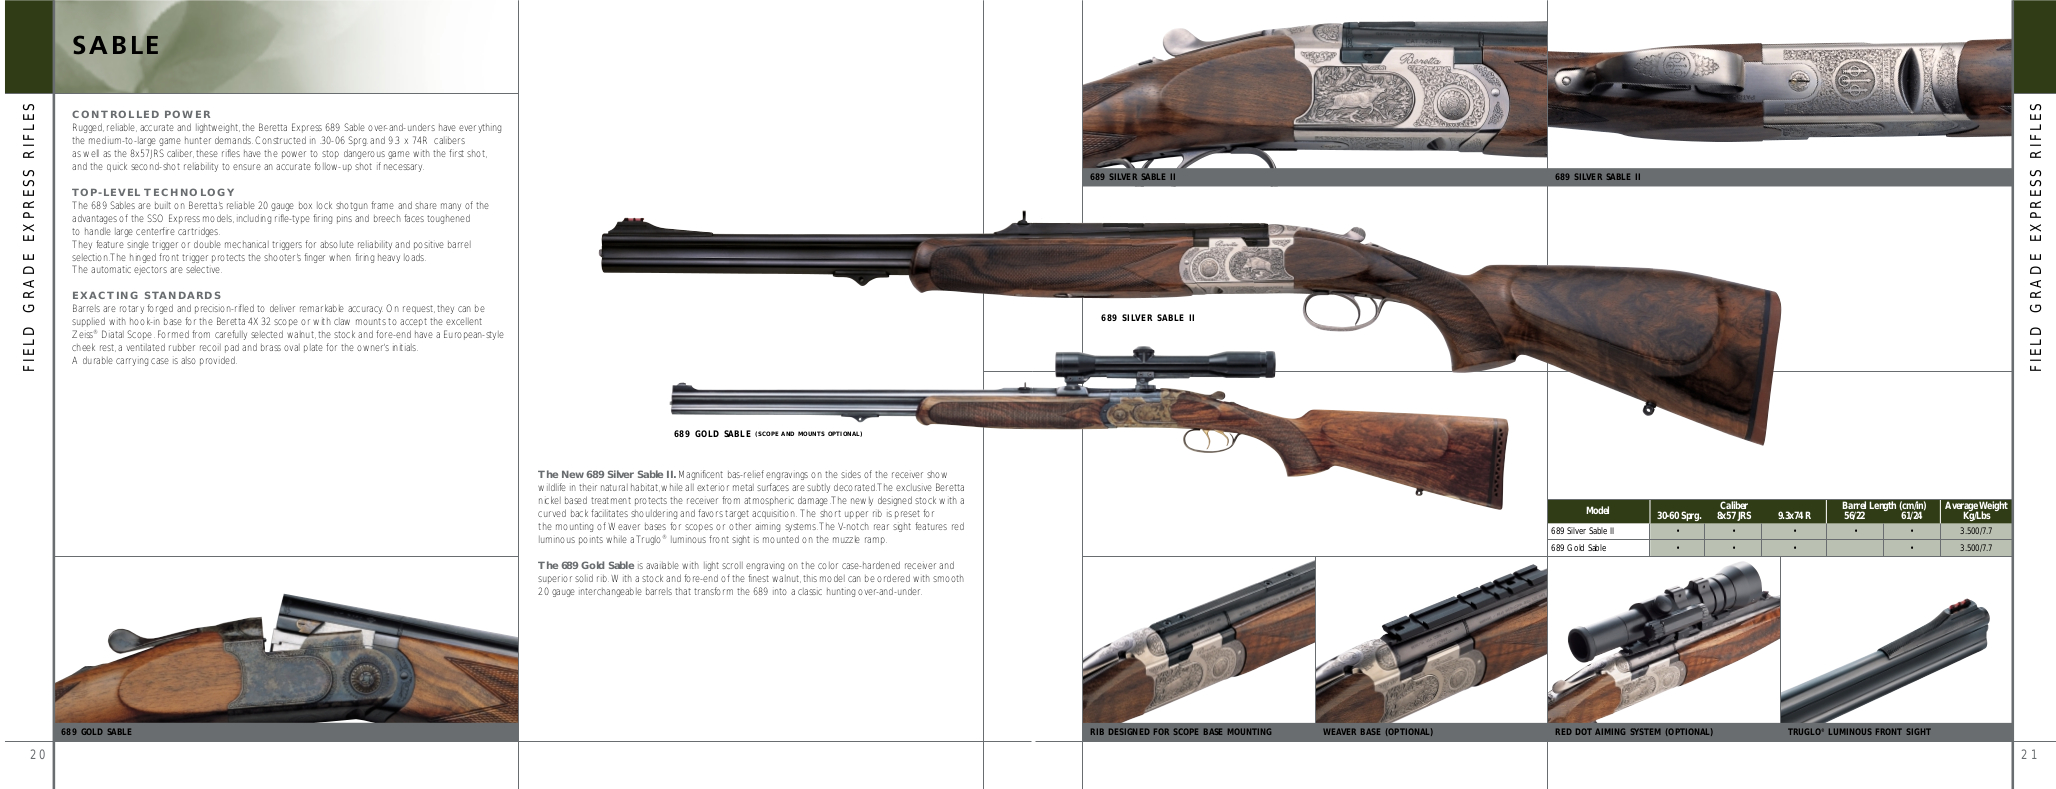 Page from the Beretta catalogue featuring the Silver Sable double rifles. (Picture courtesy Beretta).